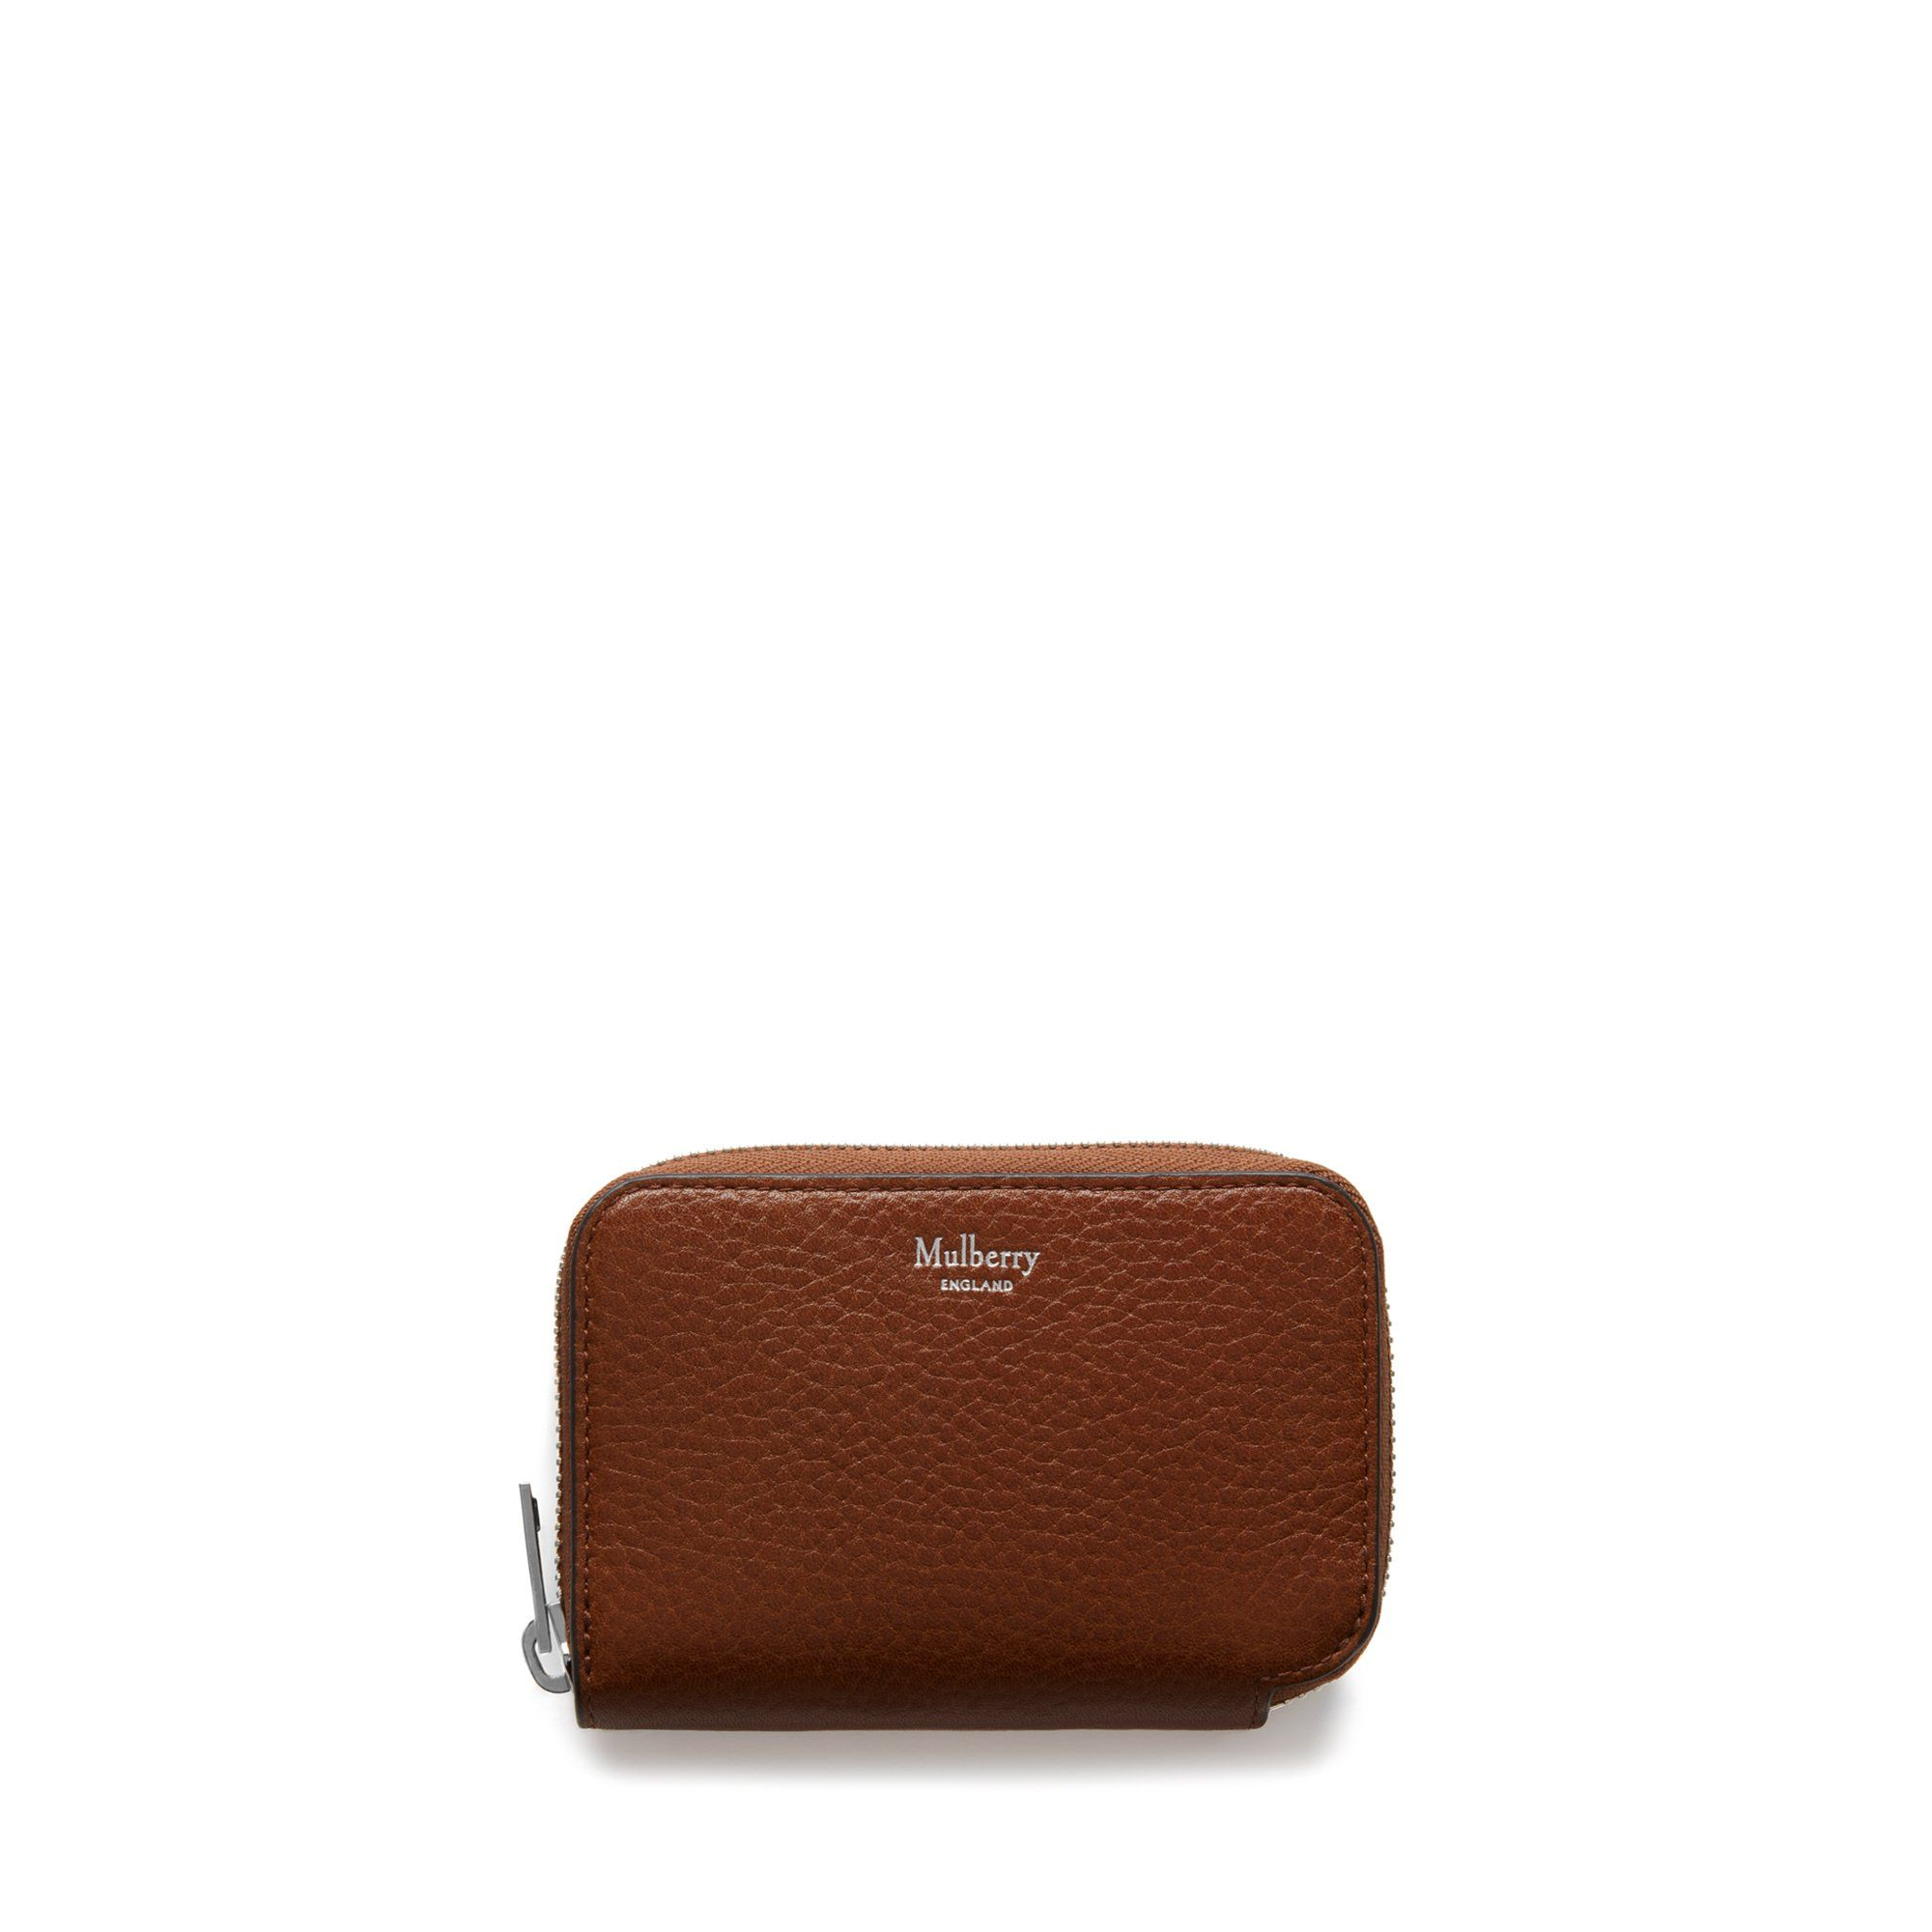 8a3df331e45a Small Leather Goods